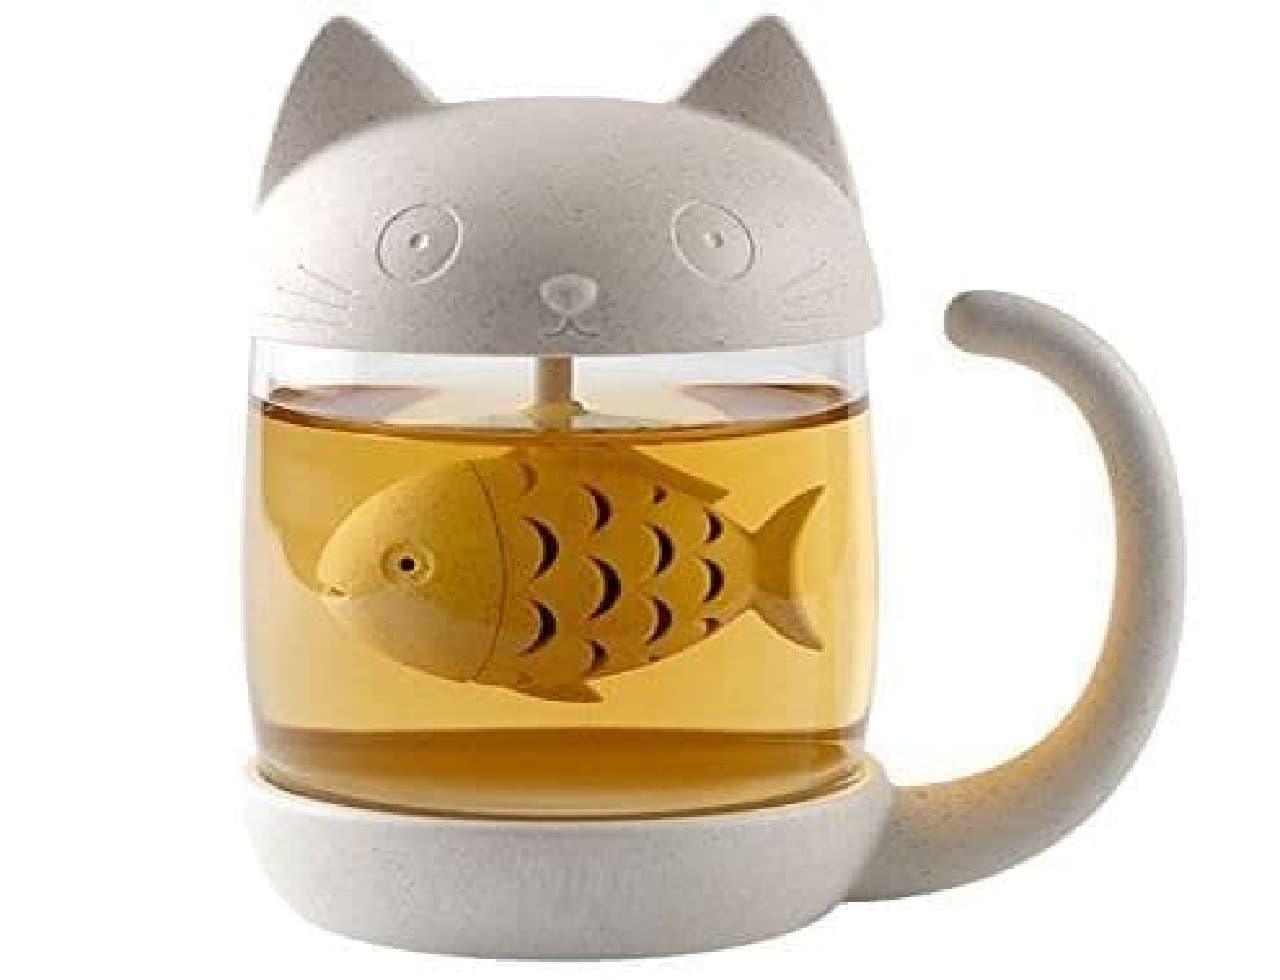 ネコ型ティーマグ「Cute Cat Tea Mug with Lid Fish Tea Infuser」